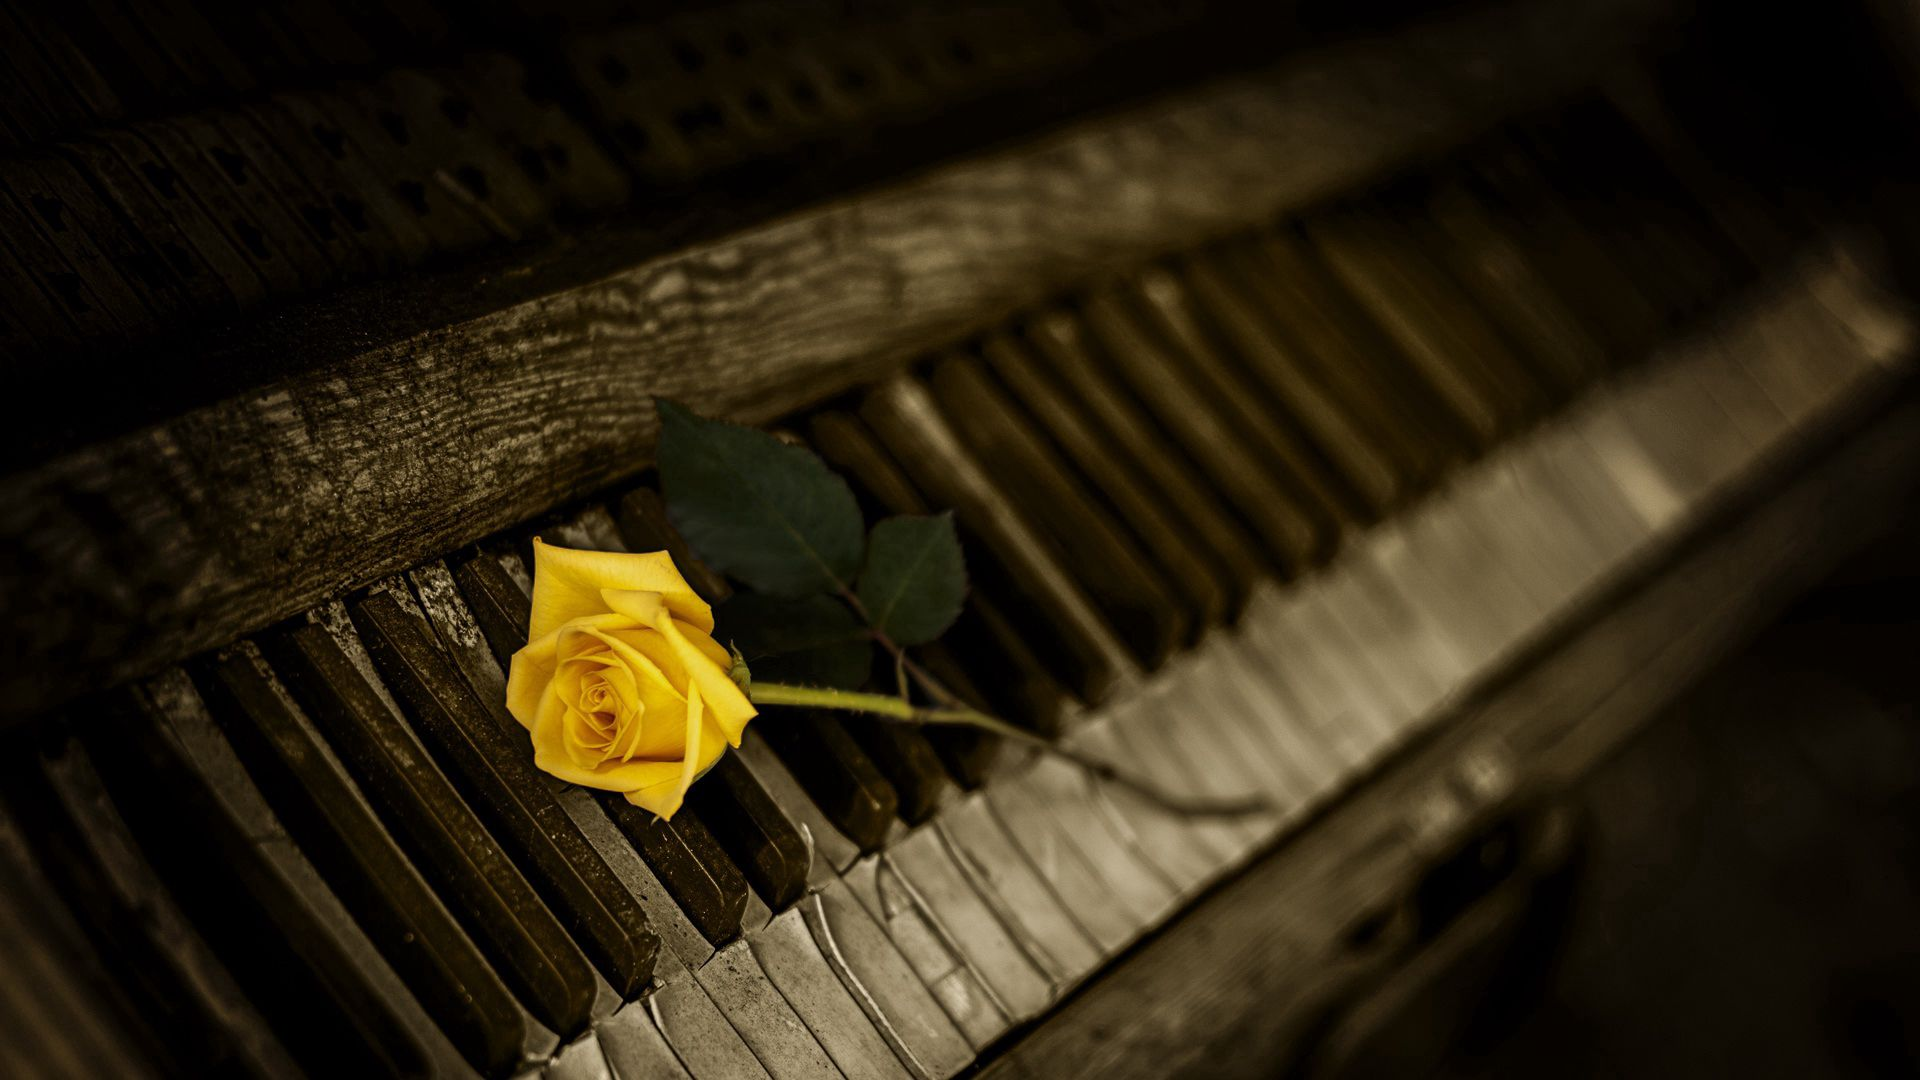 71983 download wallpaper Flowers, Piano, Rose Flower, Rose, Keys screensavers and pictures for free